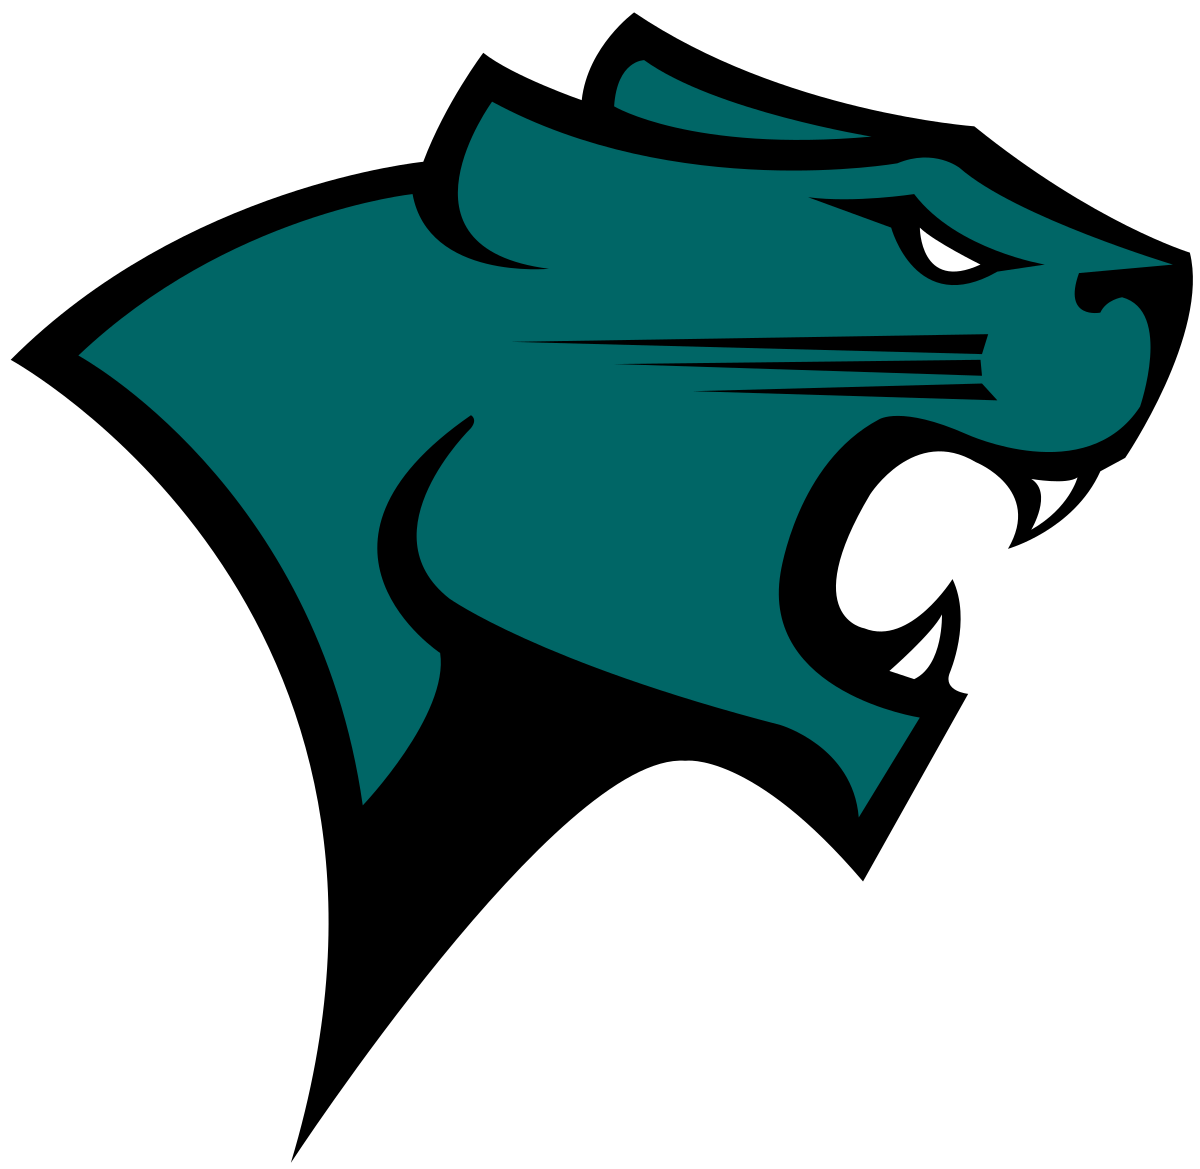 Wildcat clipart springfield. Chicago state cougars wikipedia